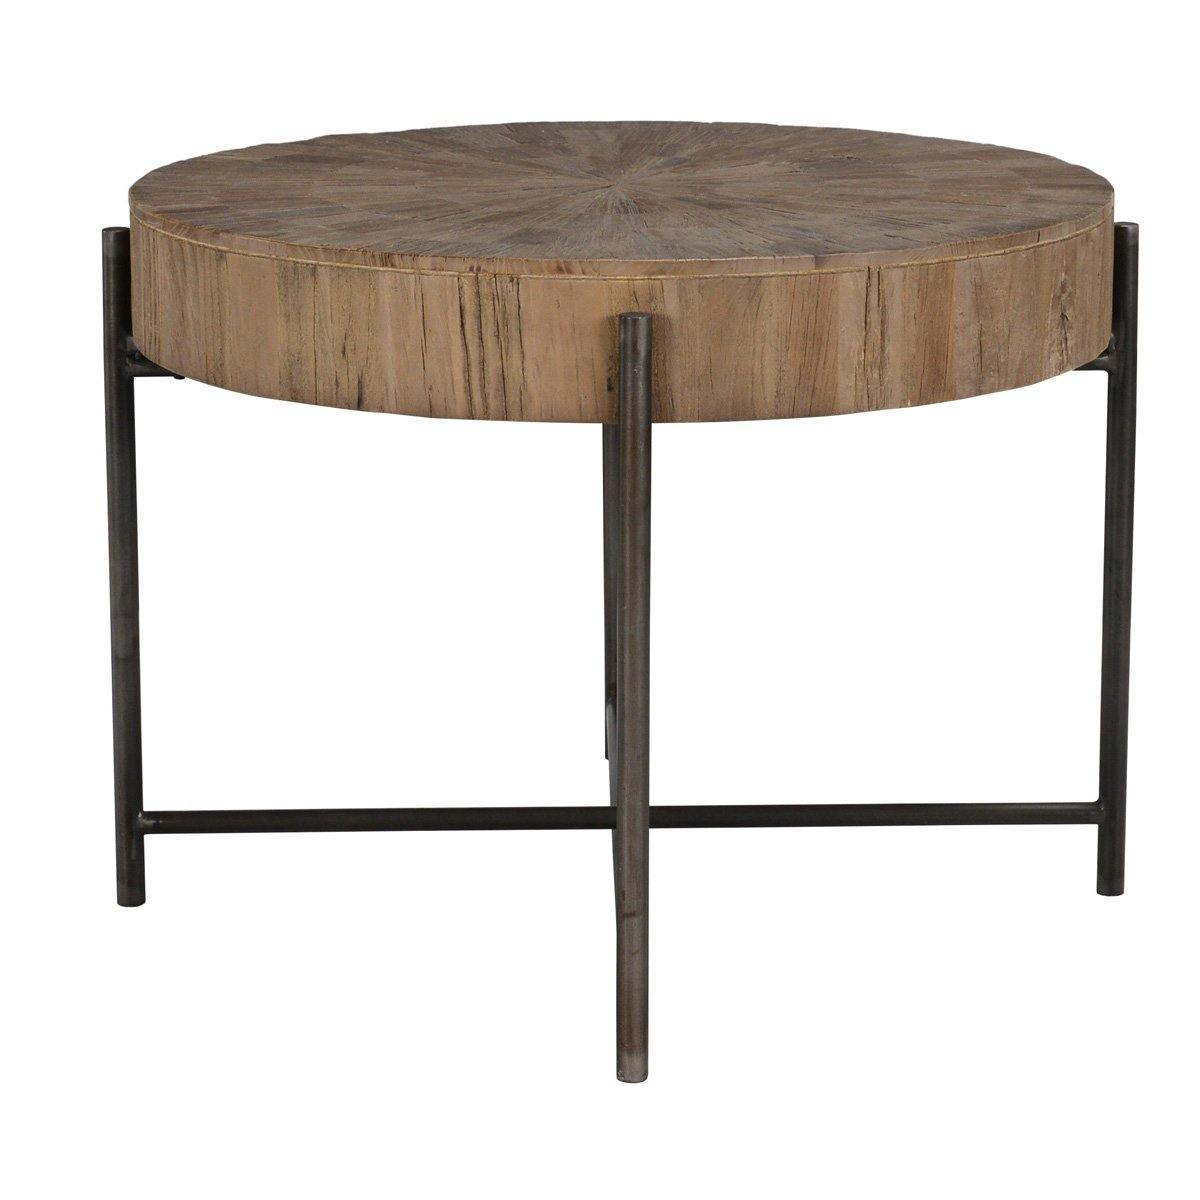 "Molly 28"" Coffee Table - The Tin Roof Furniture"